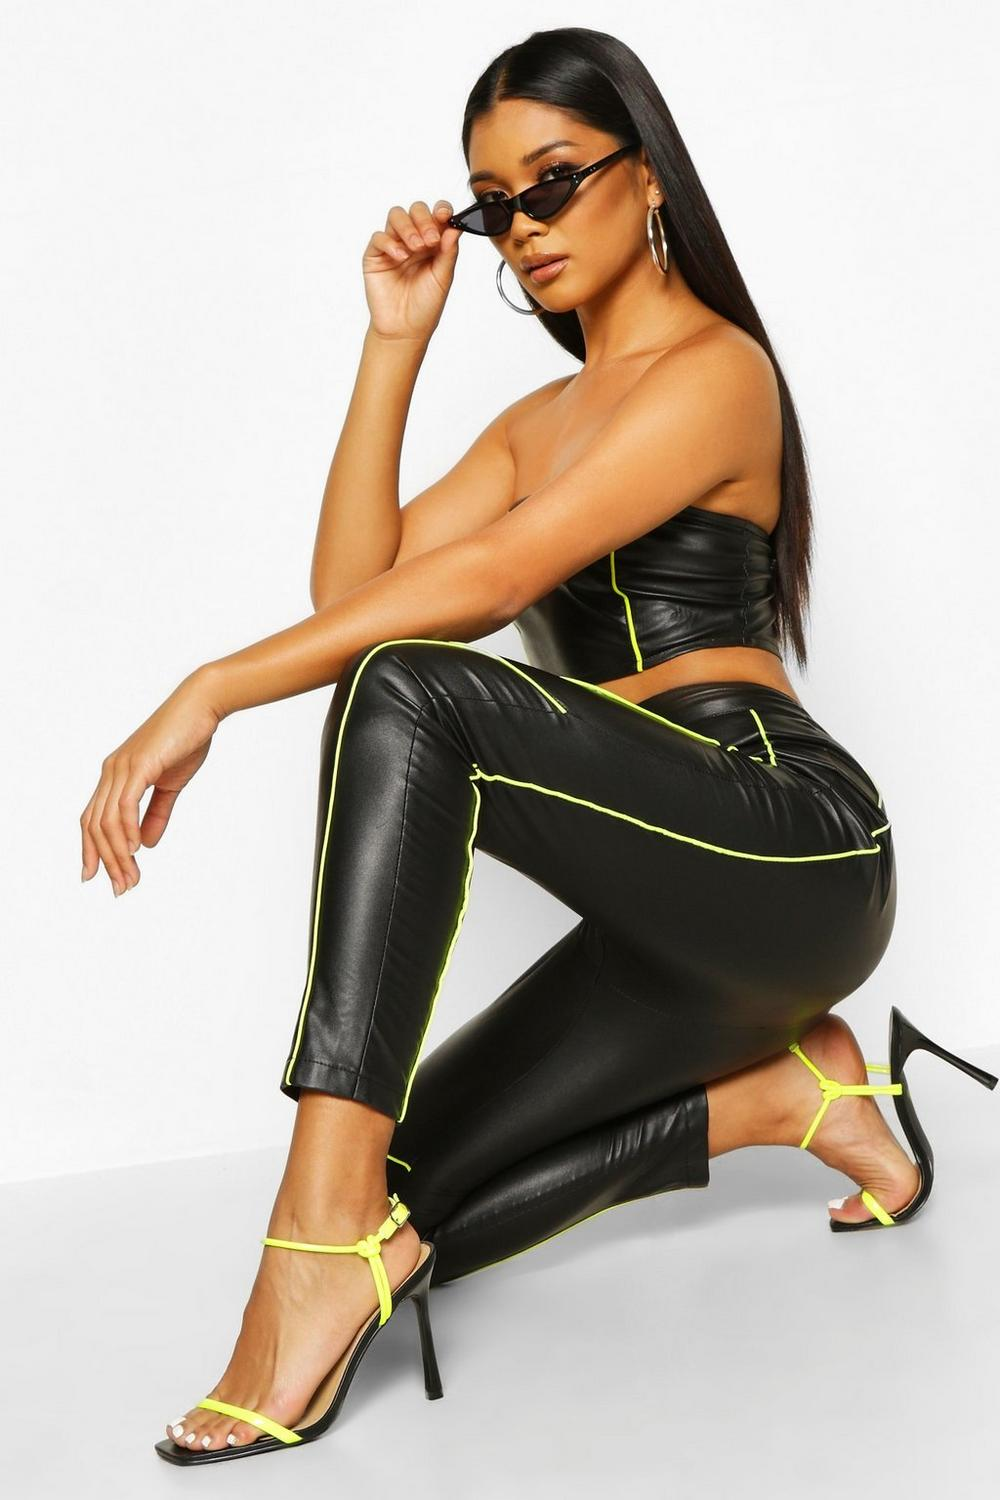 Cierra Neon Biker Trim Leather Effect Vinyl Trousers - Woven Trends